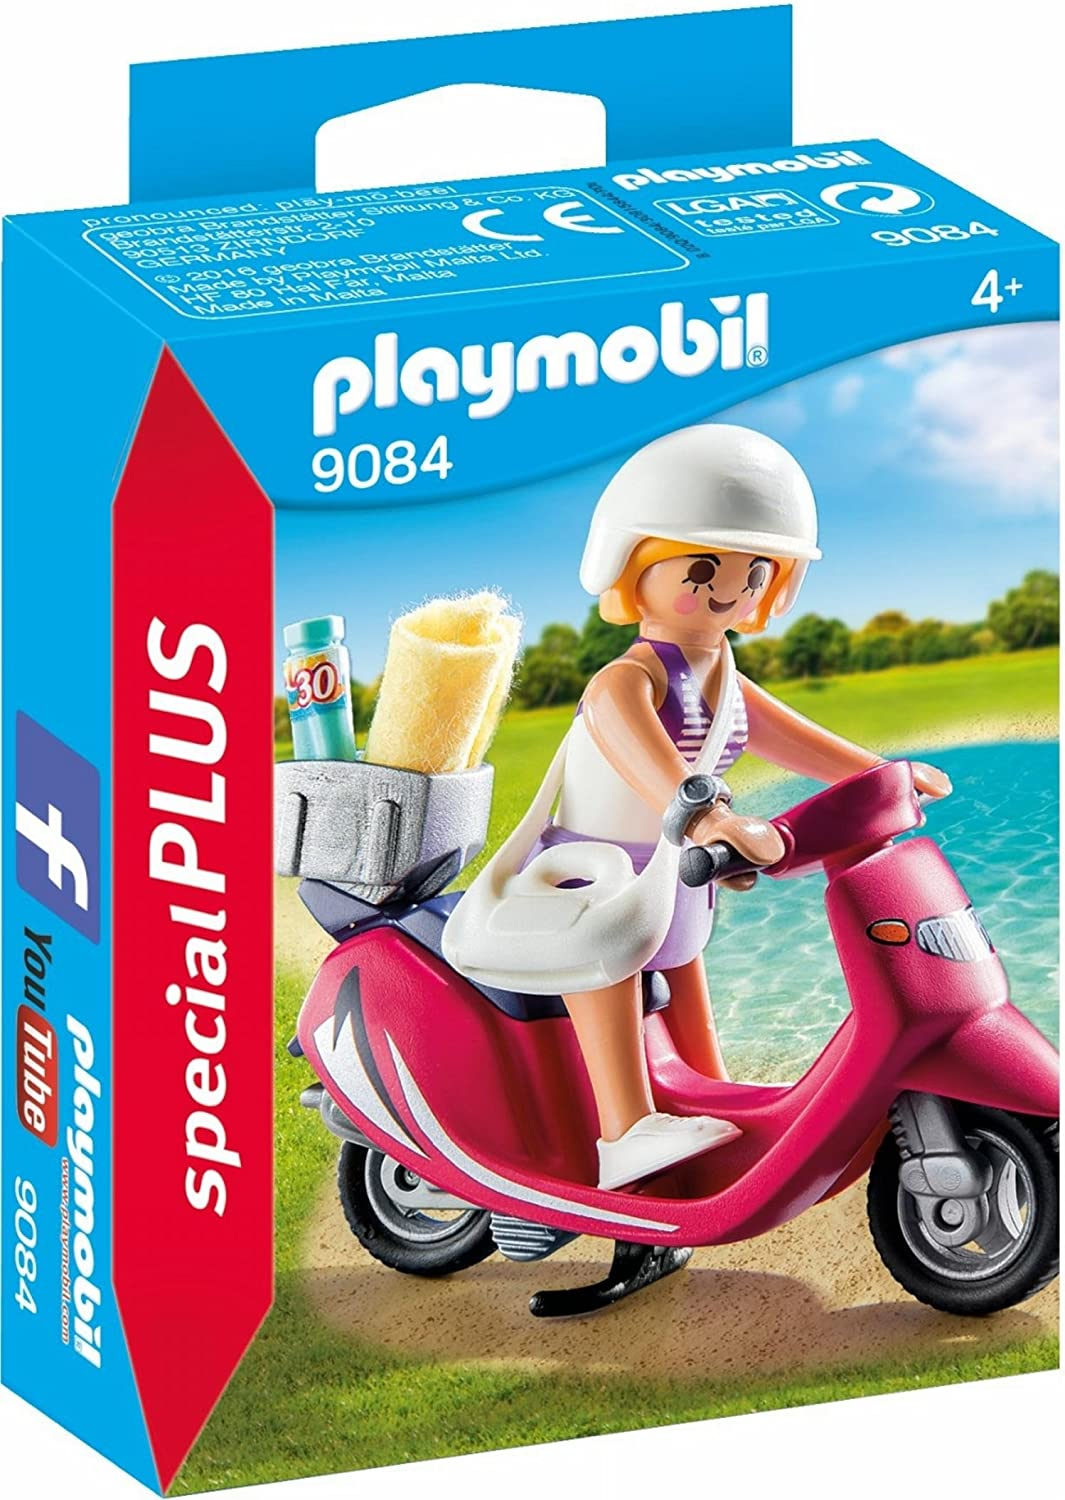 PLAYMOBIL Especiales Plus-9084 Mujer con Scooter, Multicolor, única (9084)